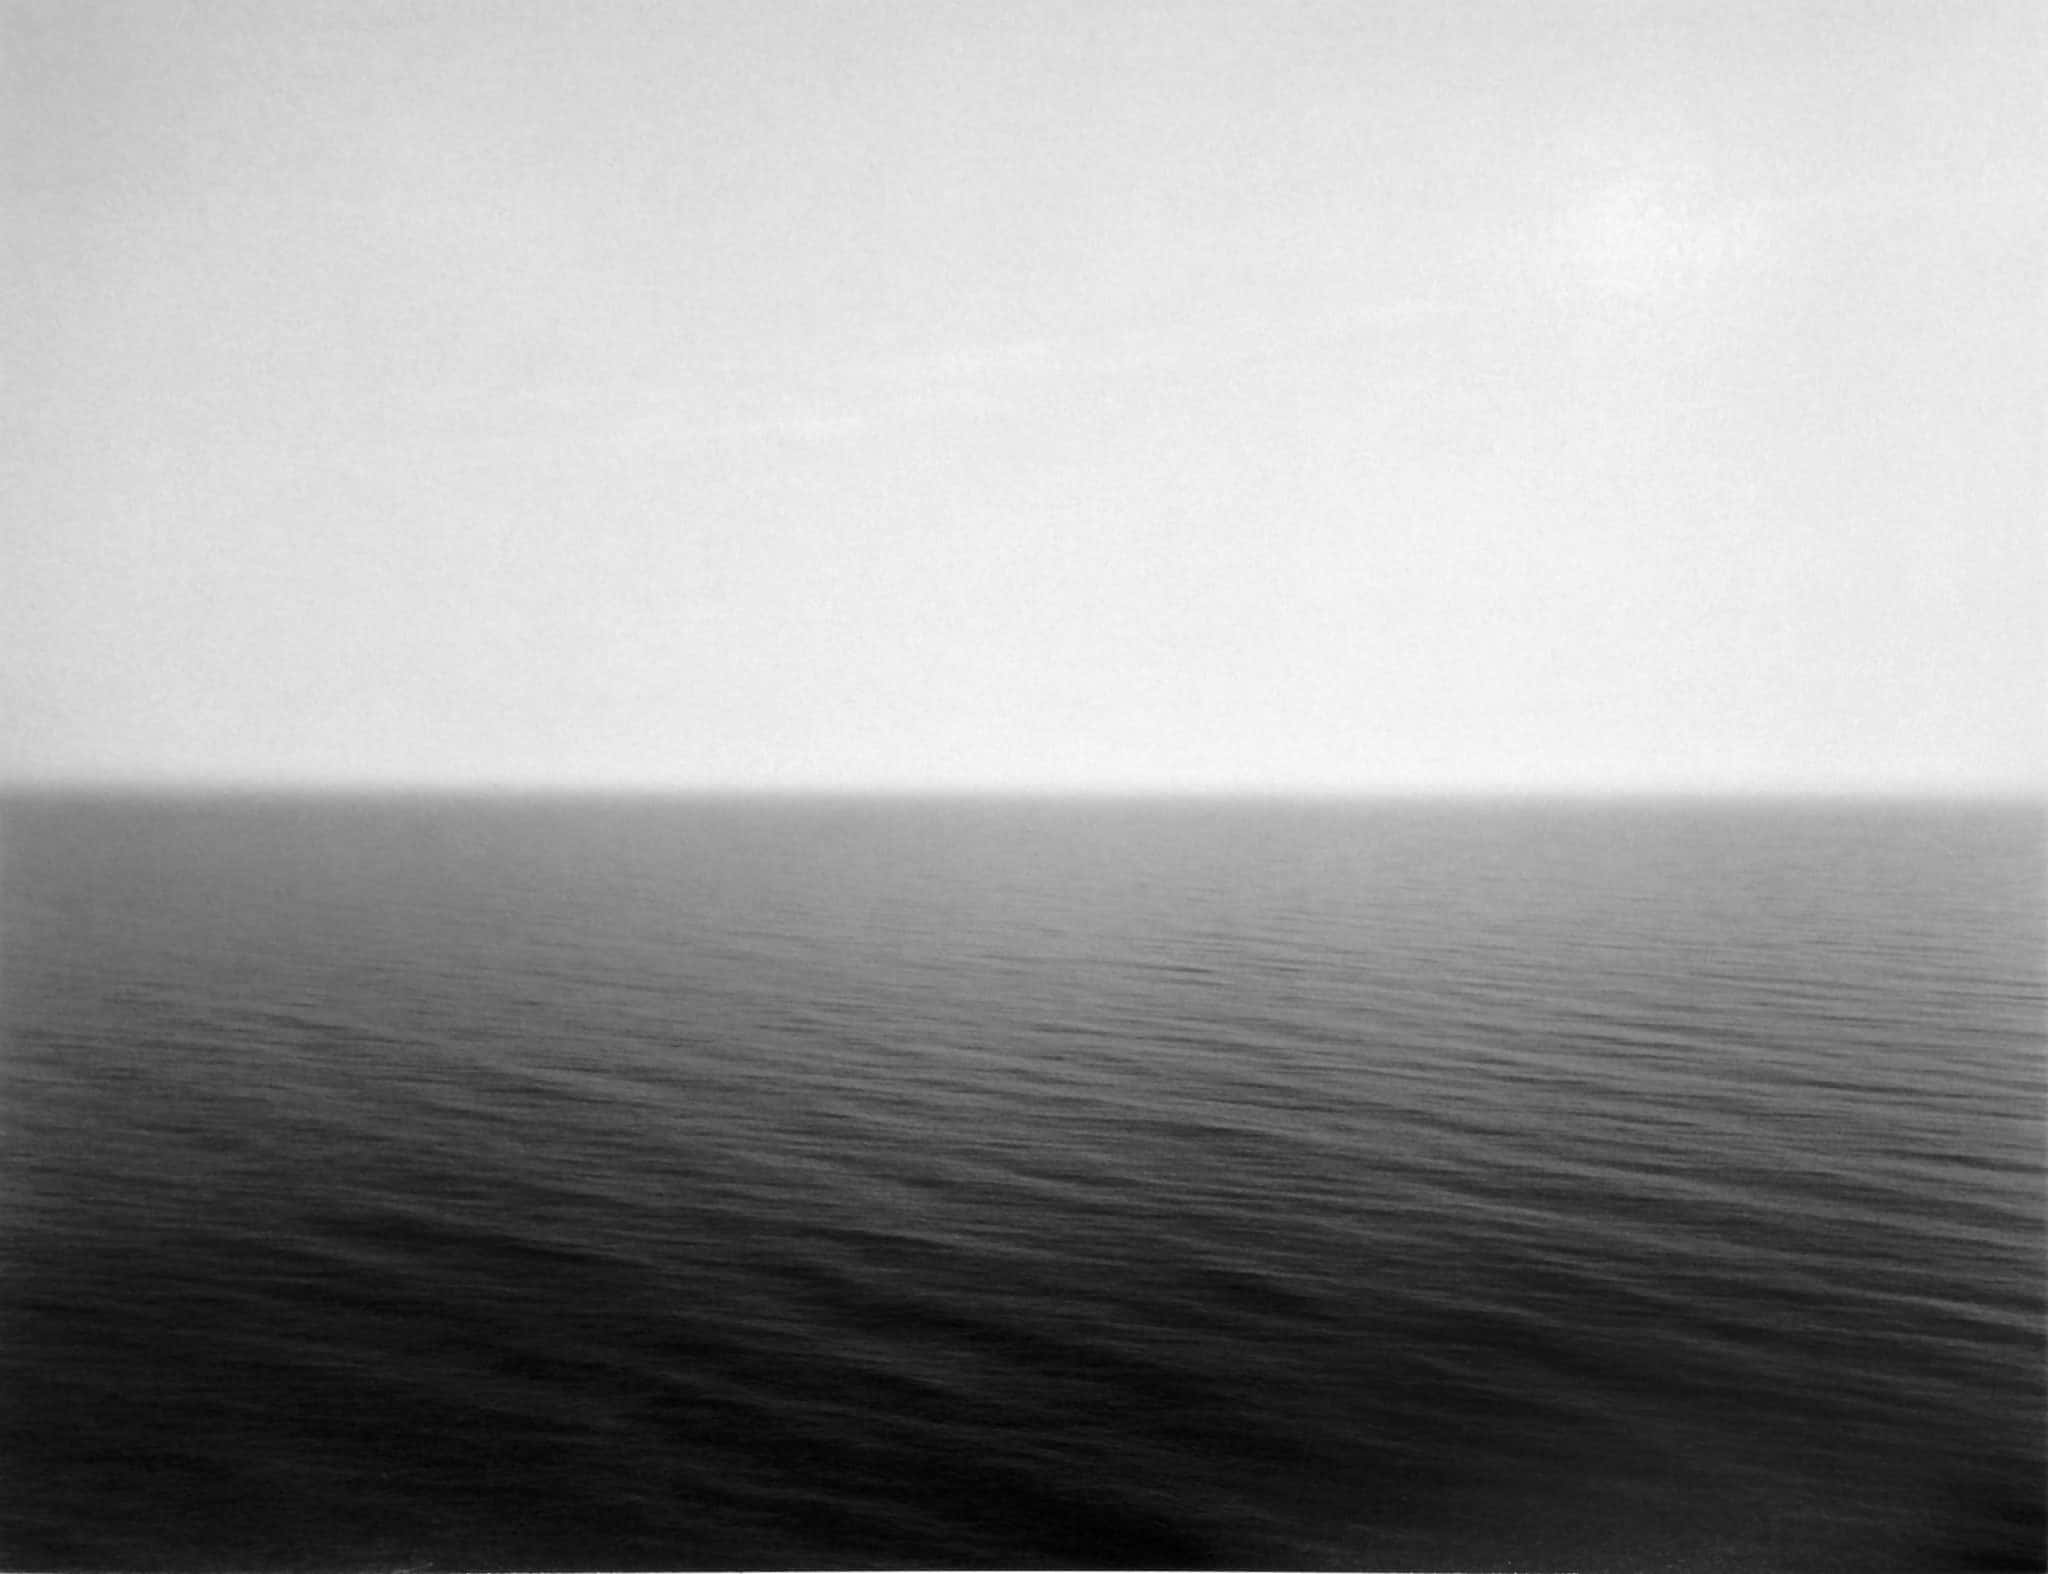 25933-1390951180-Sugimoto, Time Exposed- #367 Black Sea, Inebolu 1991